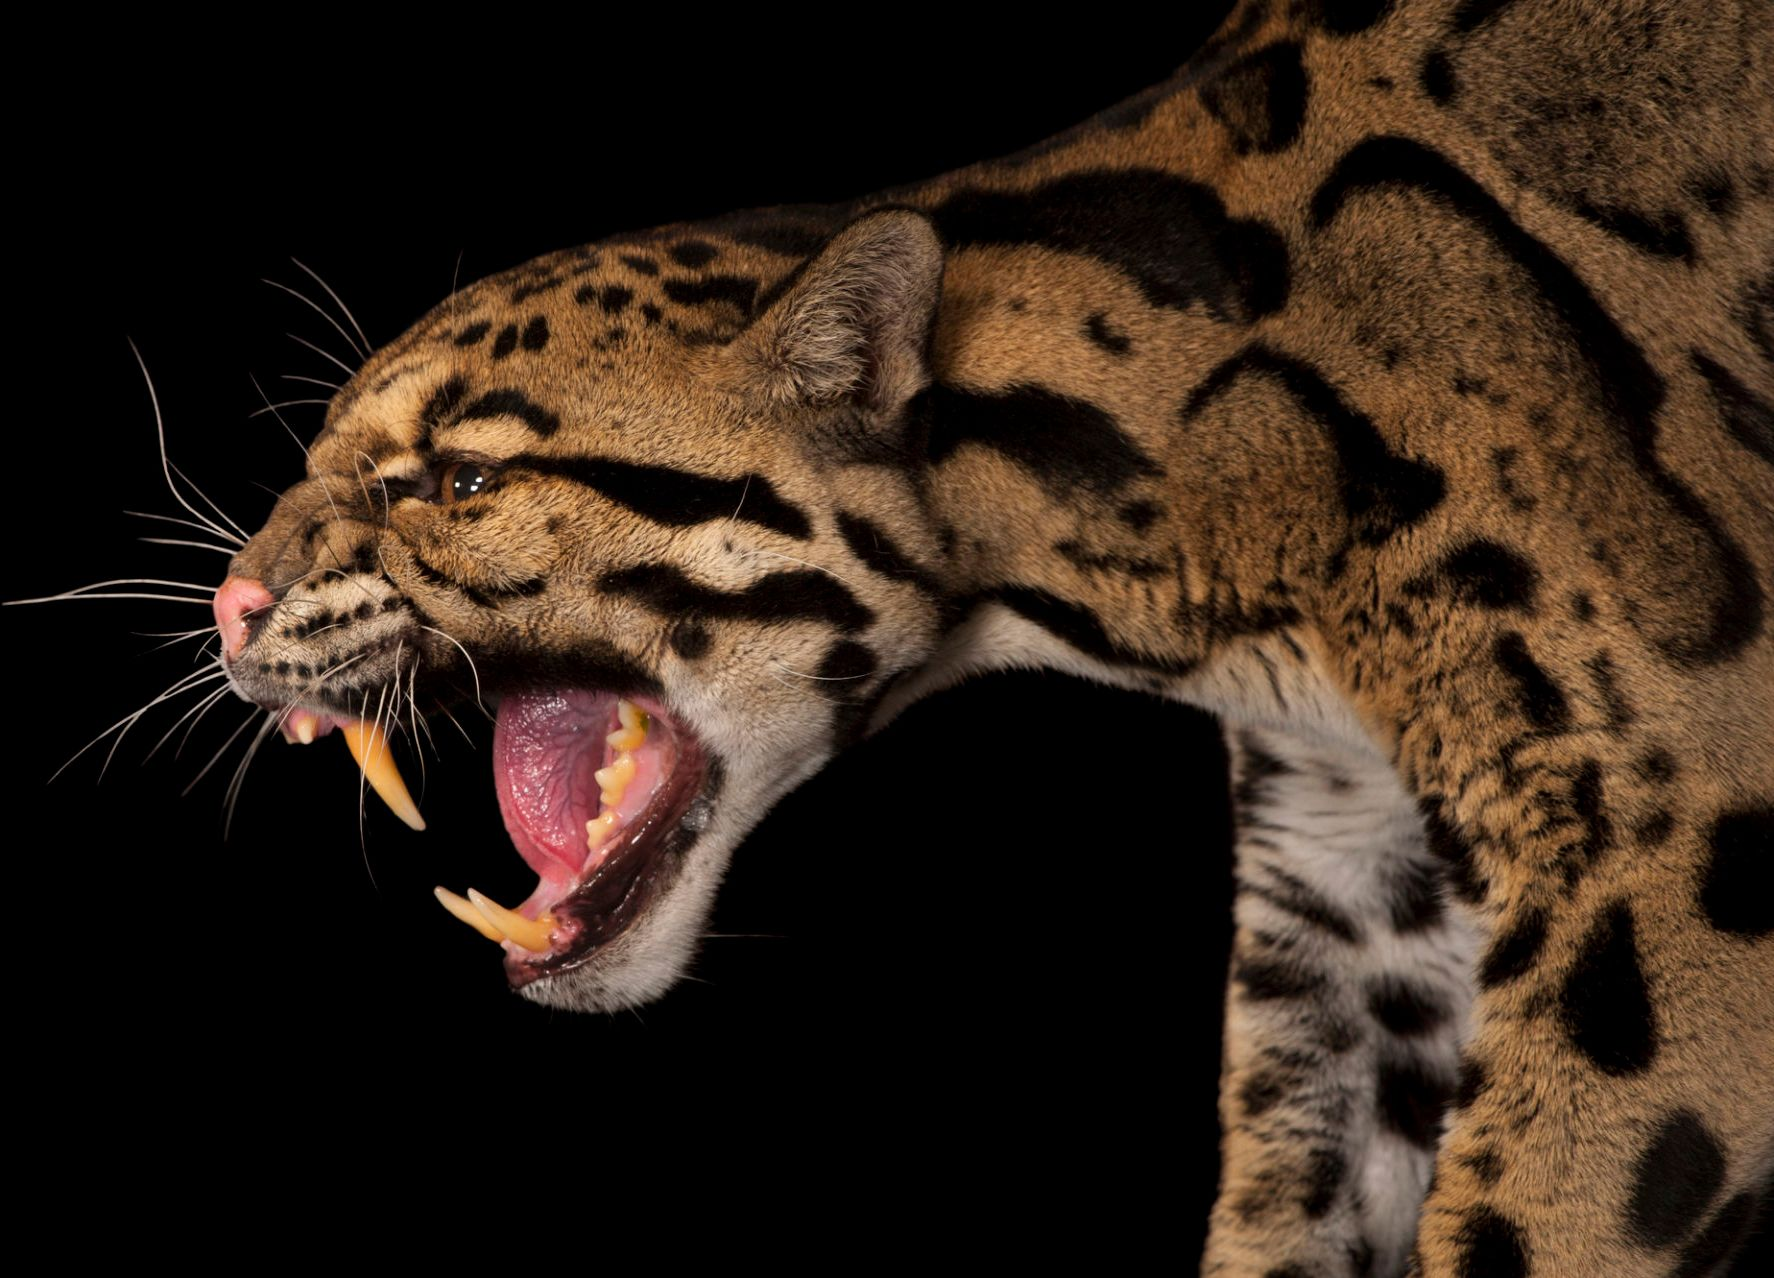 Clouded leopard (Neofelis nebulosa) at Houston Zoo. A